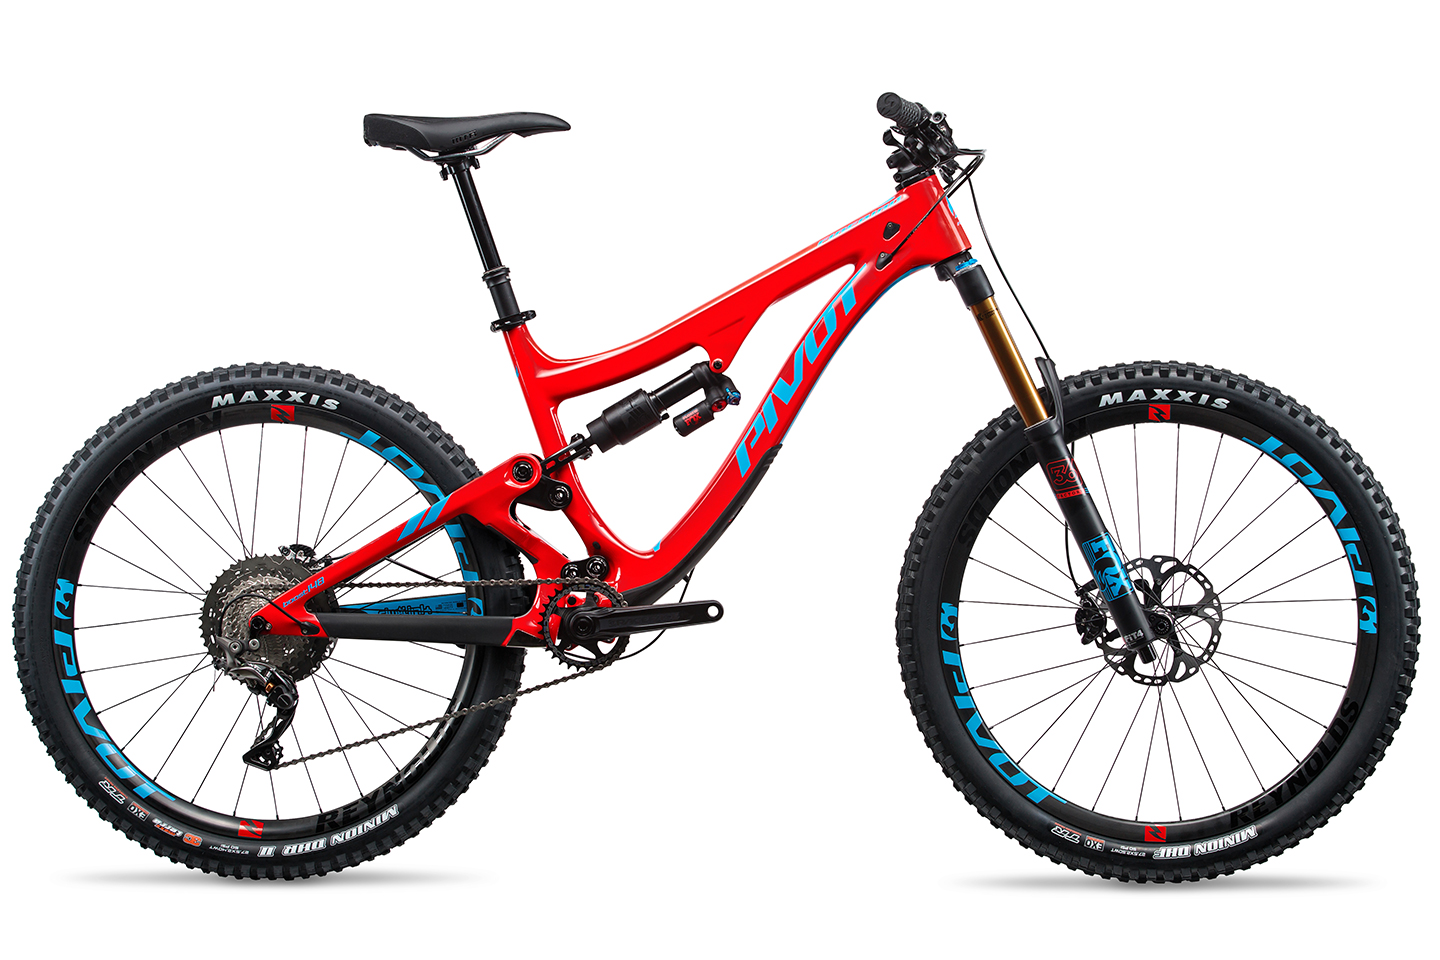 2017-Firebird---XT_XTR-pro-1X---RED-CARBON